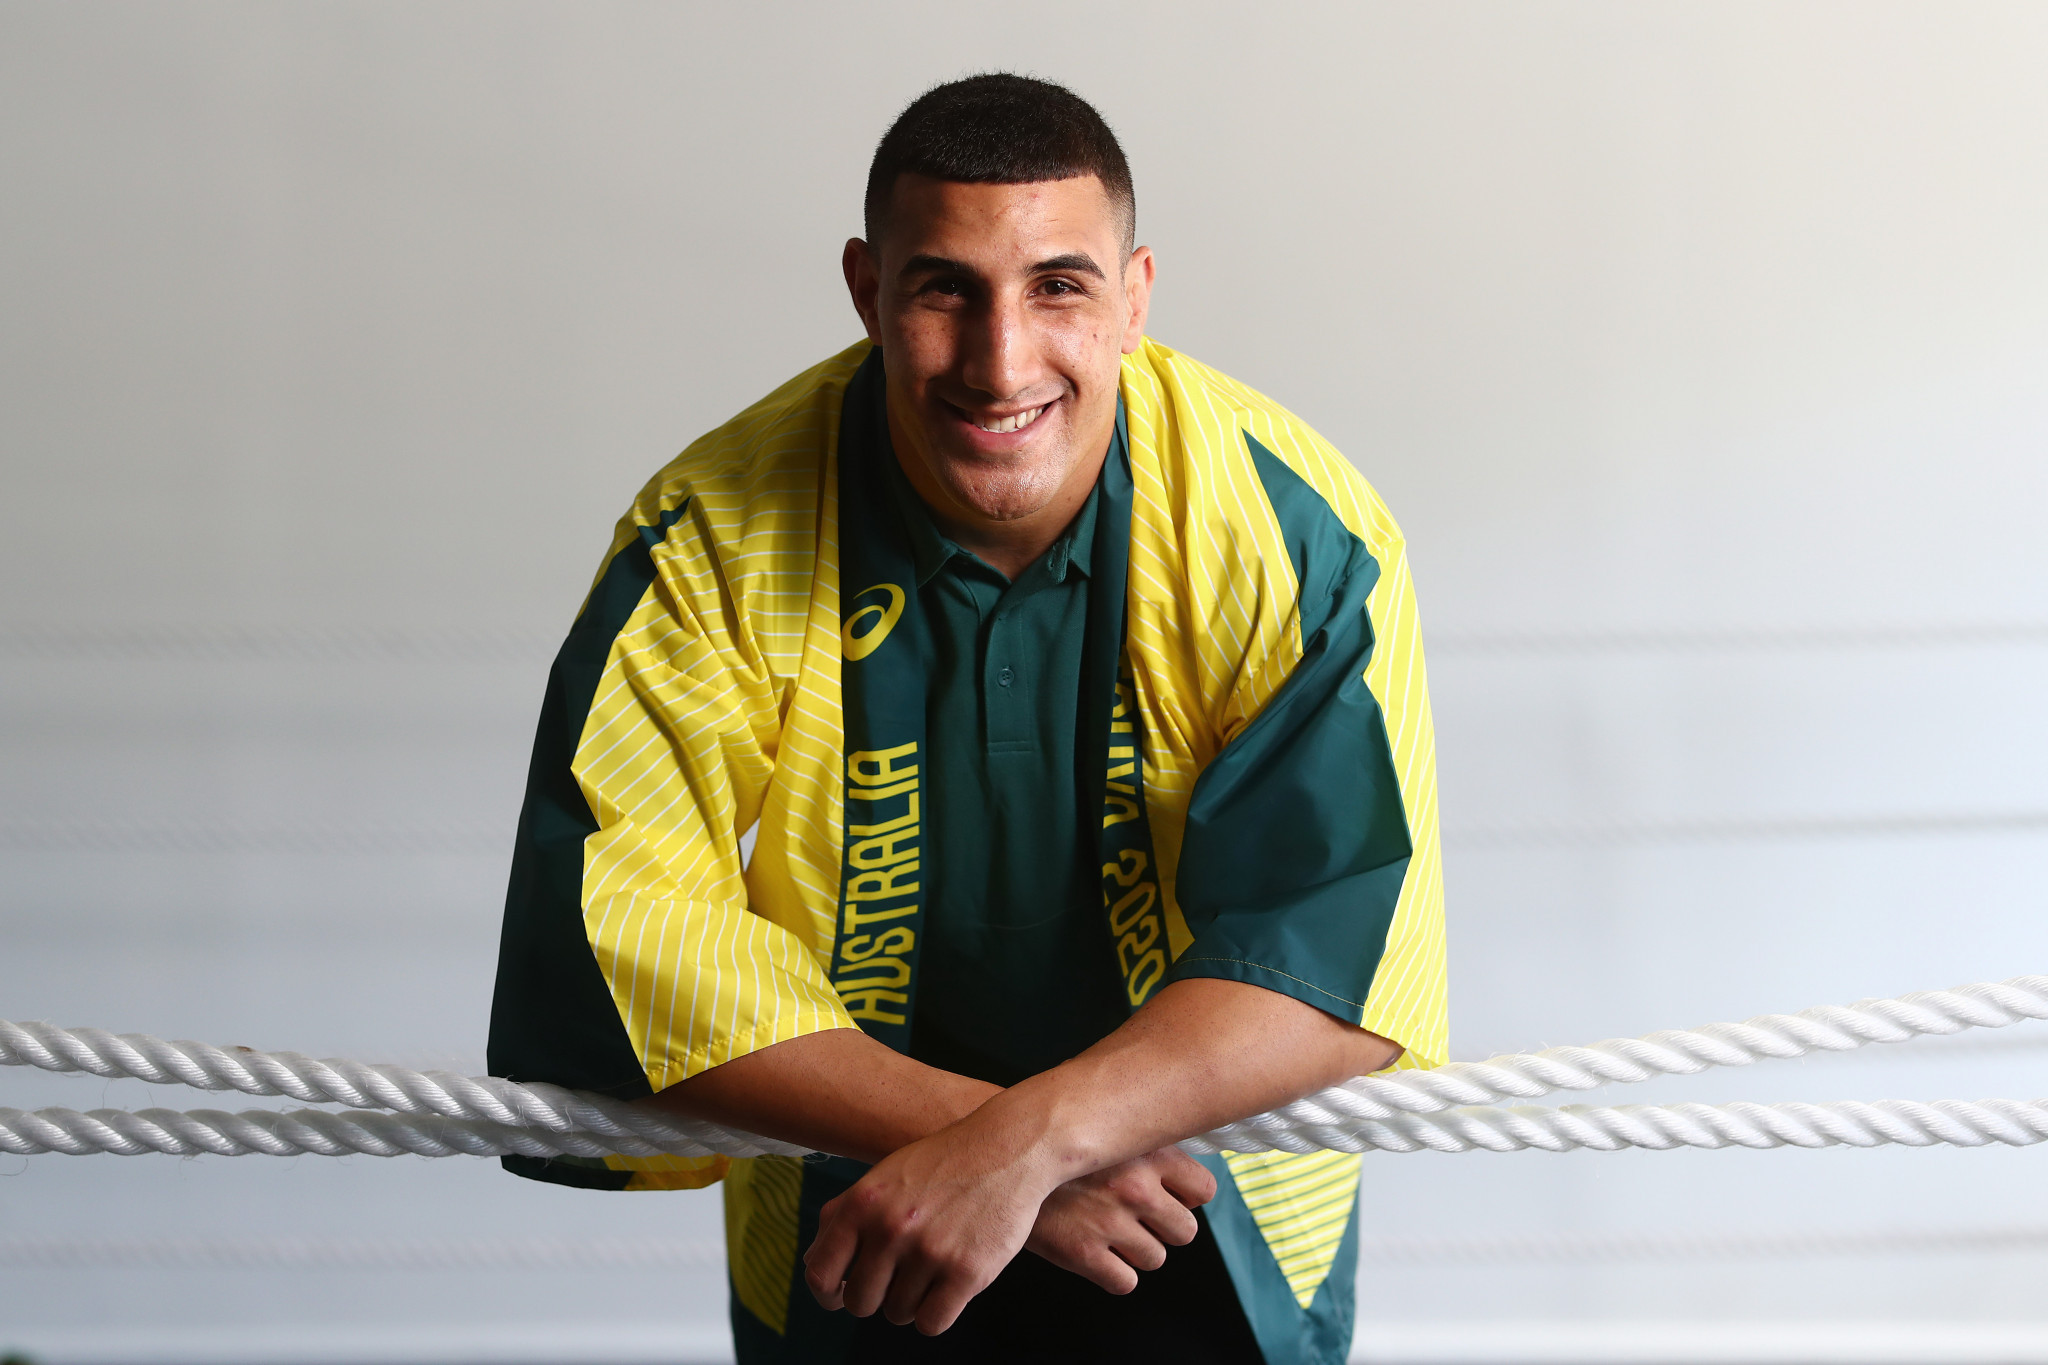 """Australian Olympic Committee """"very sad"""" after boxer pulls out of Tokyo 2020 through injury"""